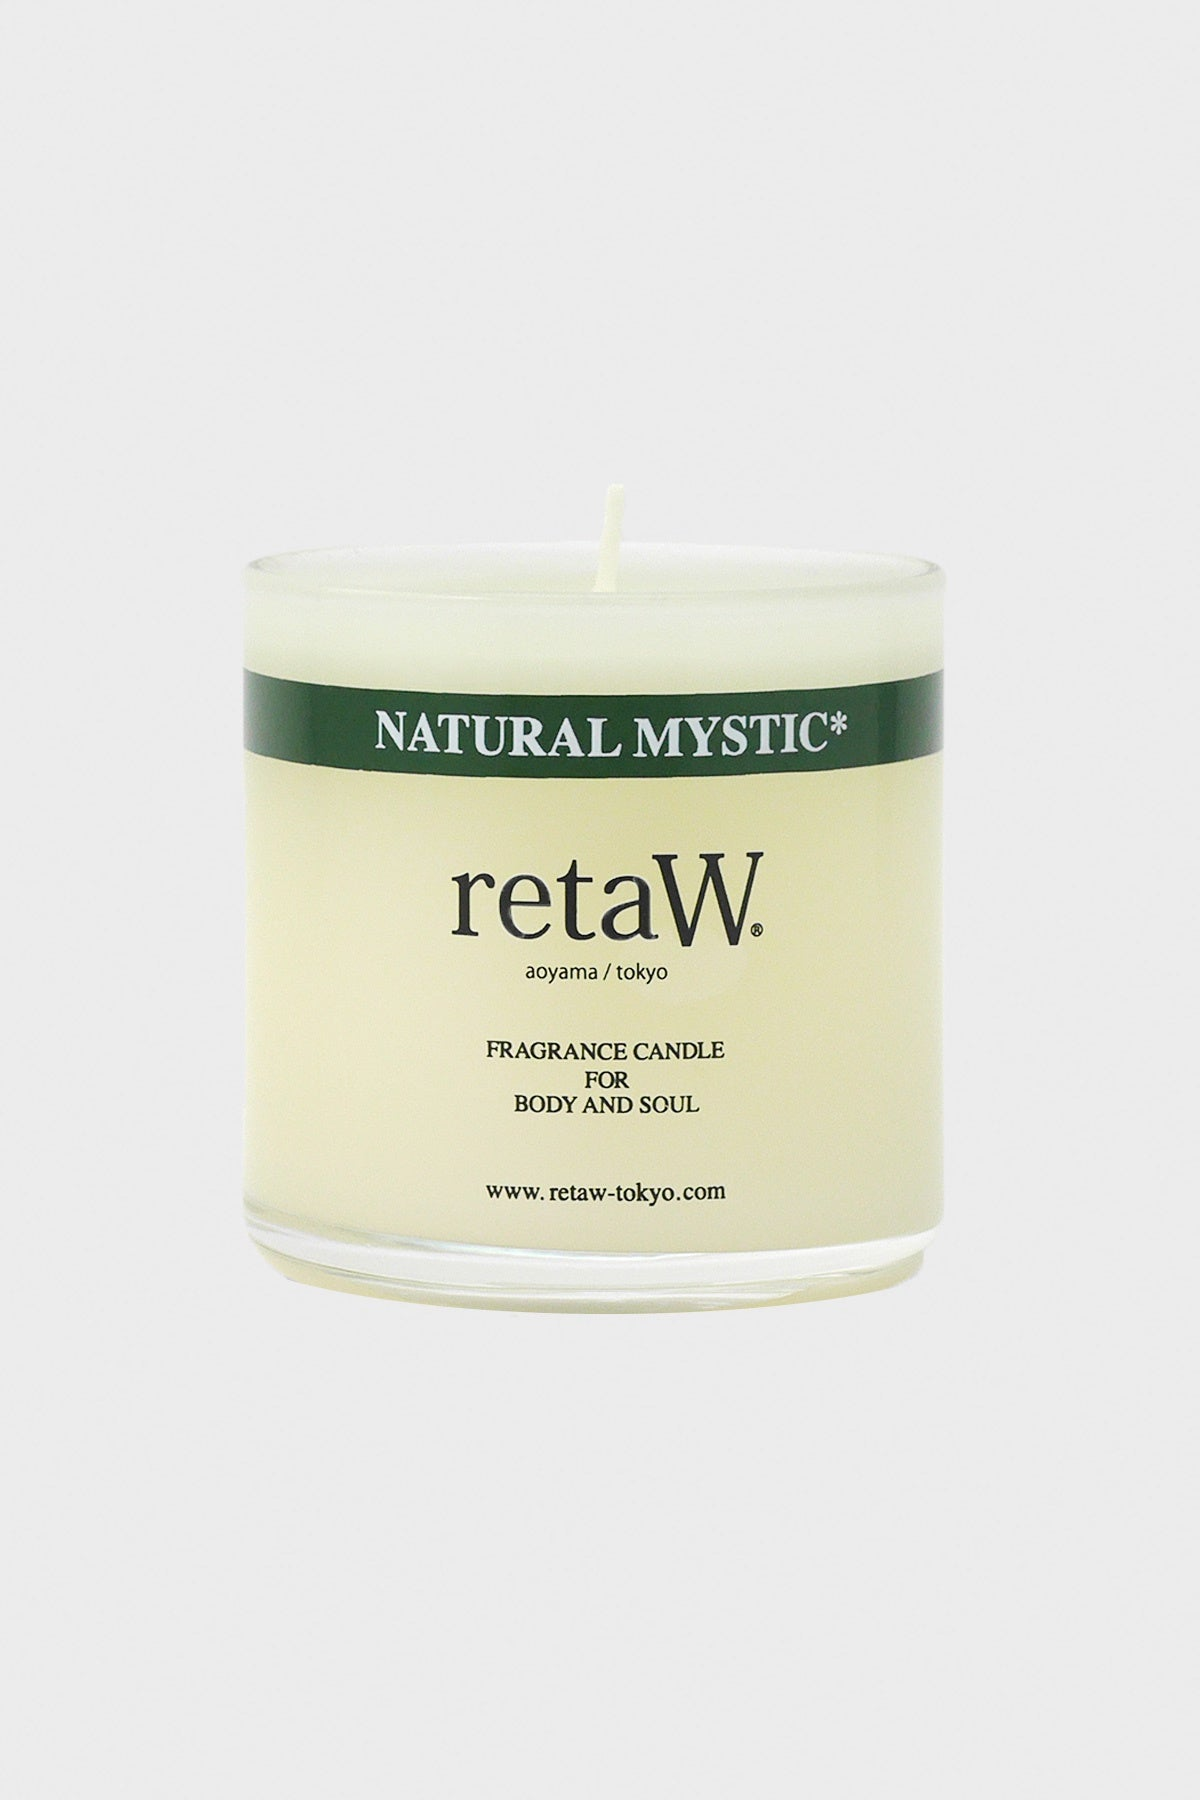 retaW - Fragrance Candle - Natural Mystic - Canoe Club